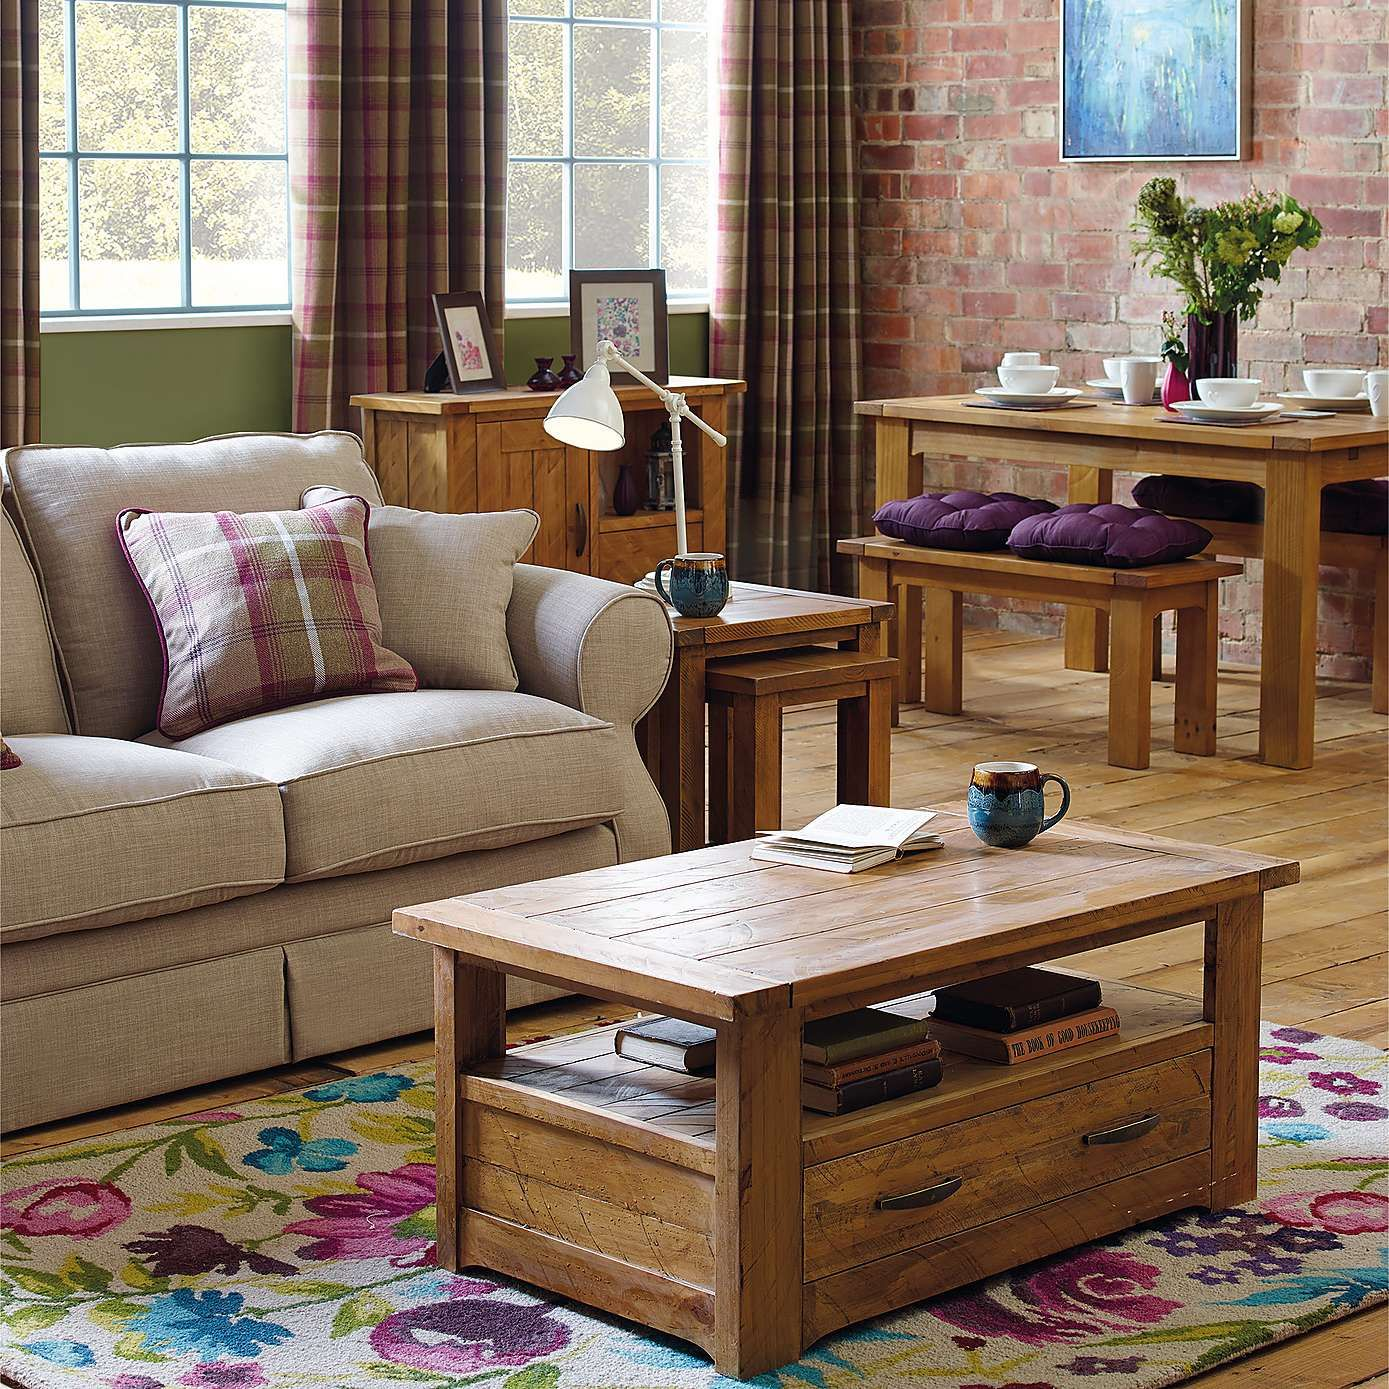 Loxley Pine Living Furniture Collection | Dunelm | Loxley | Pinterest